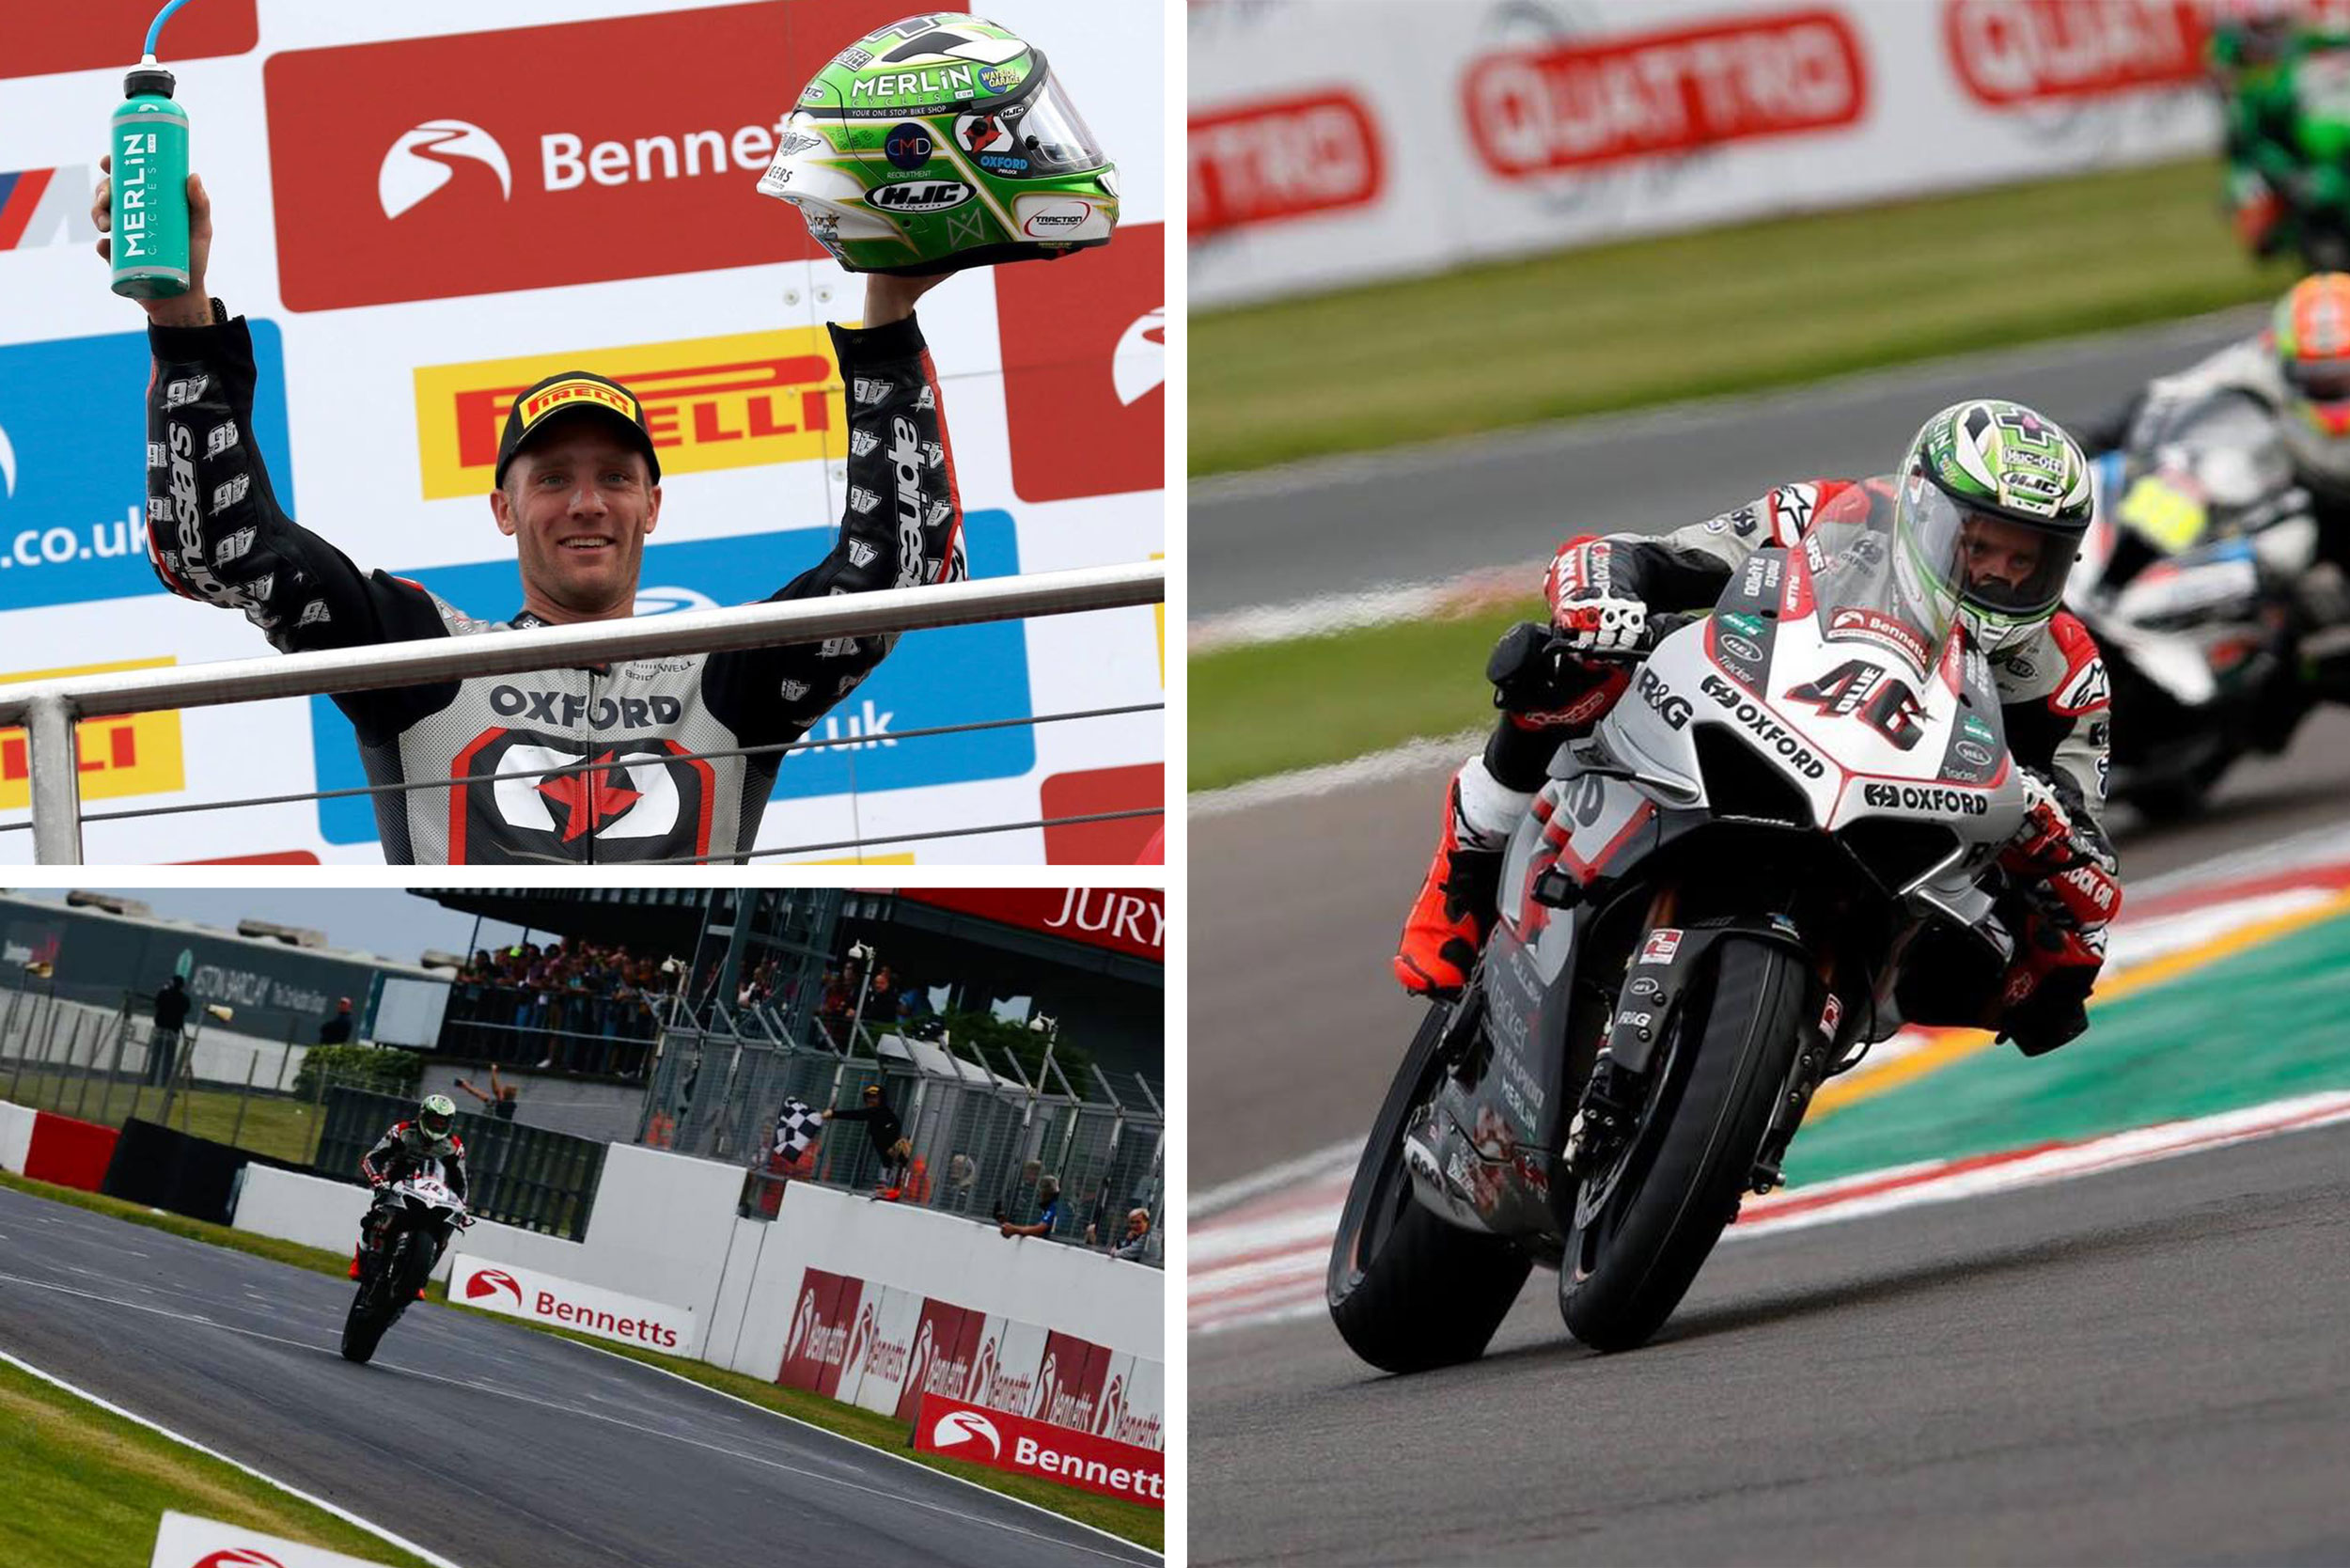 Super Soco sponsored rider, Tommy Bridewell takes commanding victory at Donnington British Superbikes